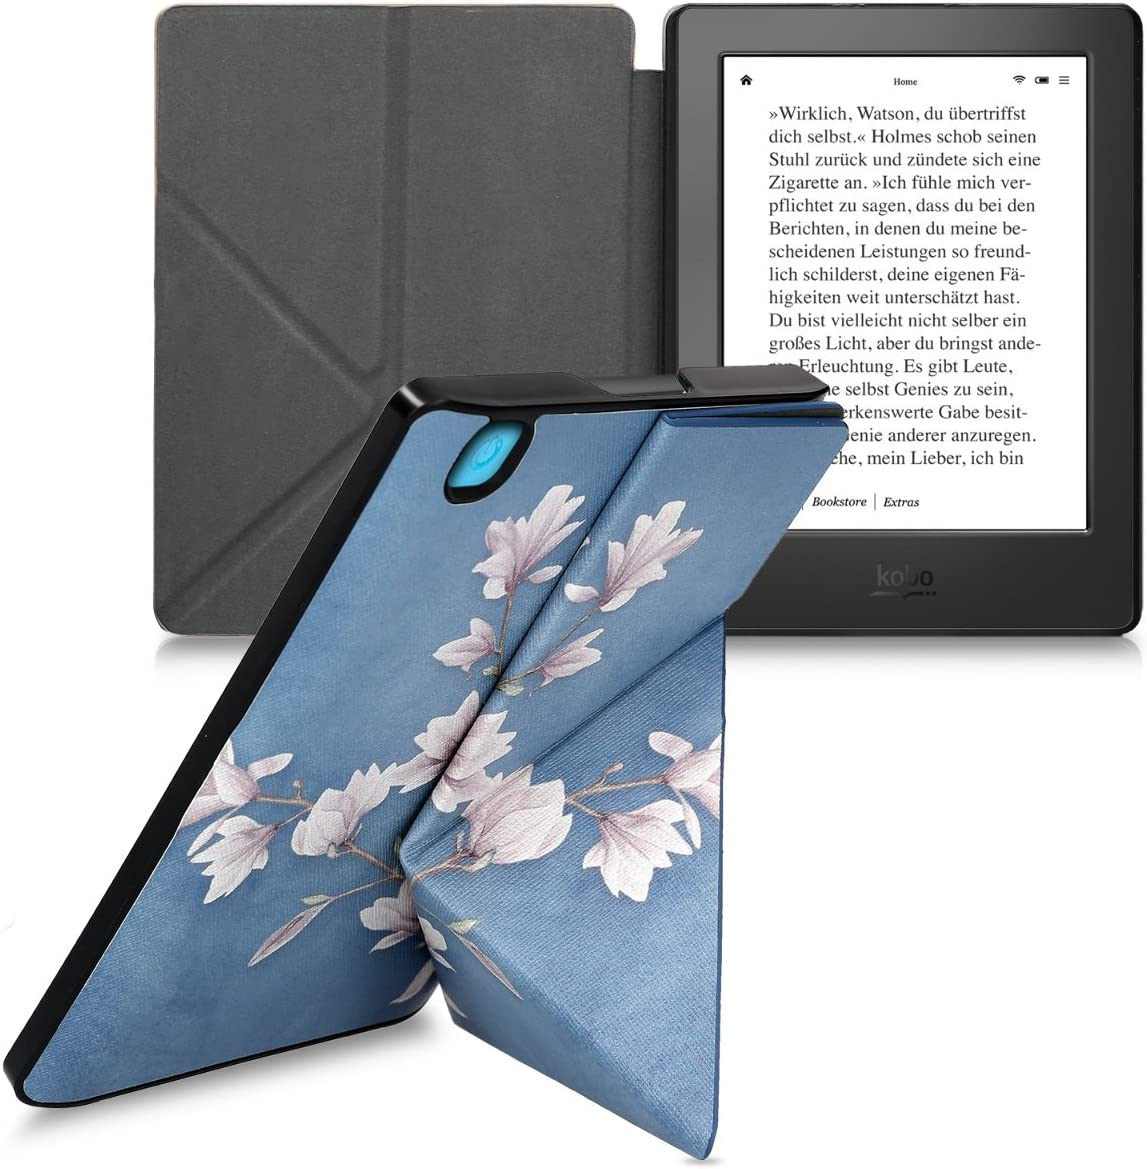 kwmobile Origami Case for Kobo Aura H2O Edition 2 Brown PU Leather//Faux Suede Cover with Magnet and Stand